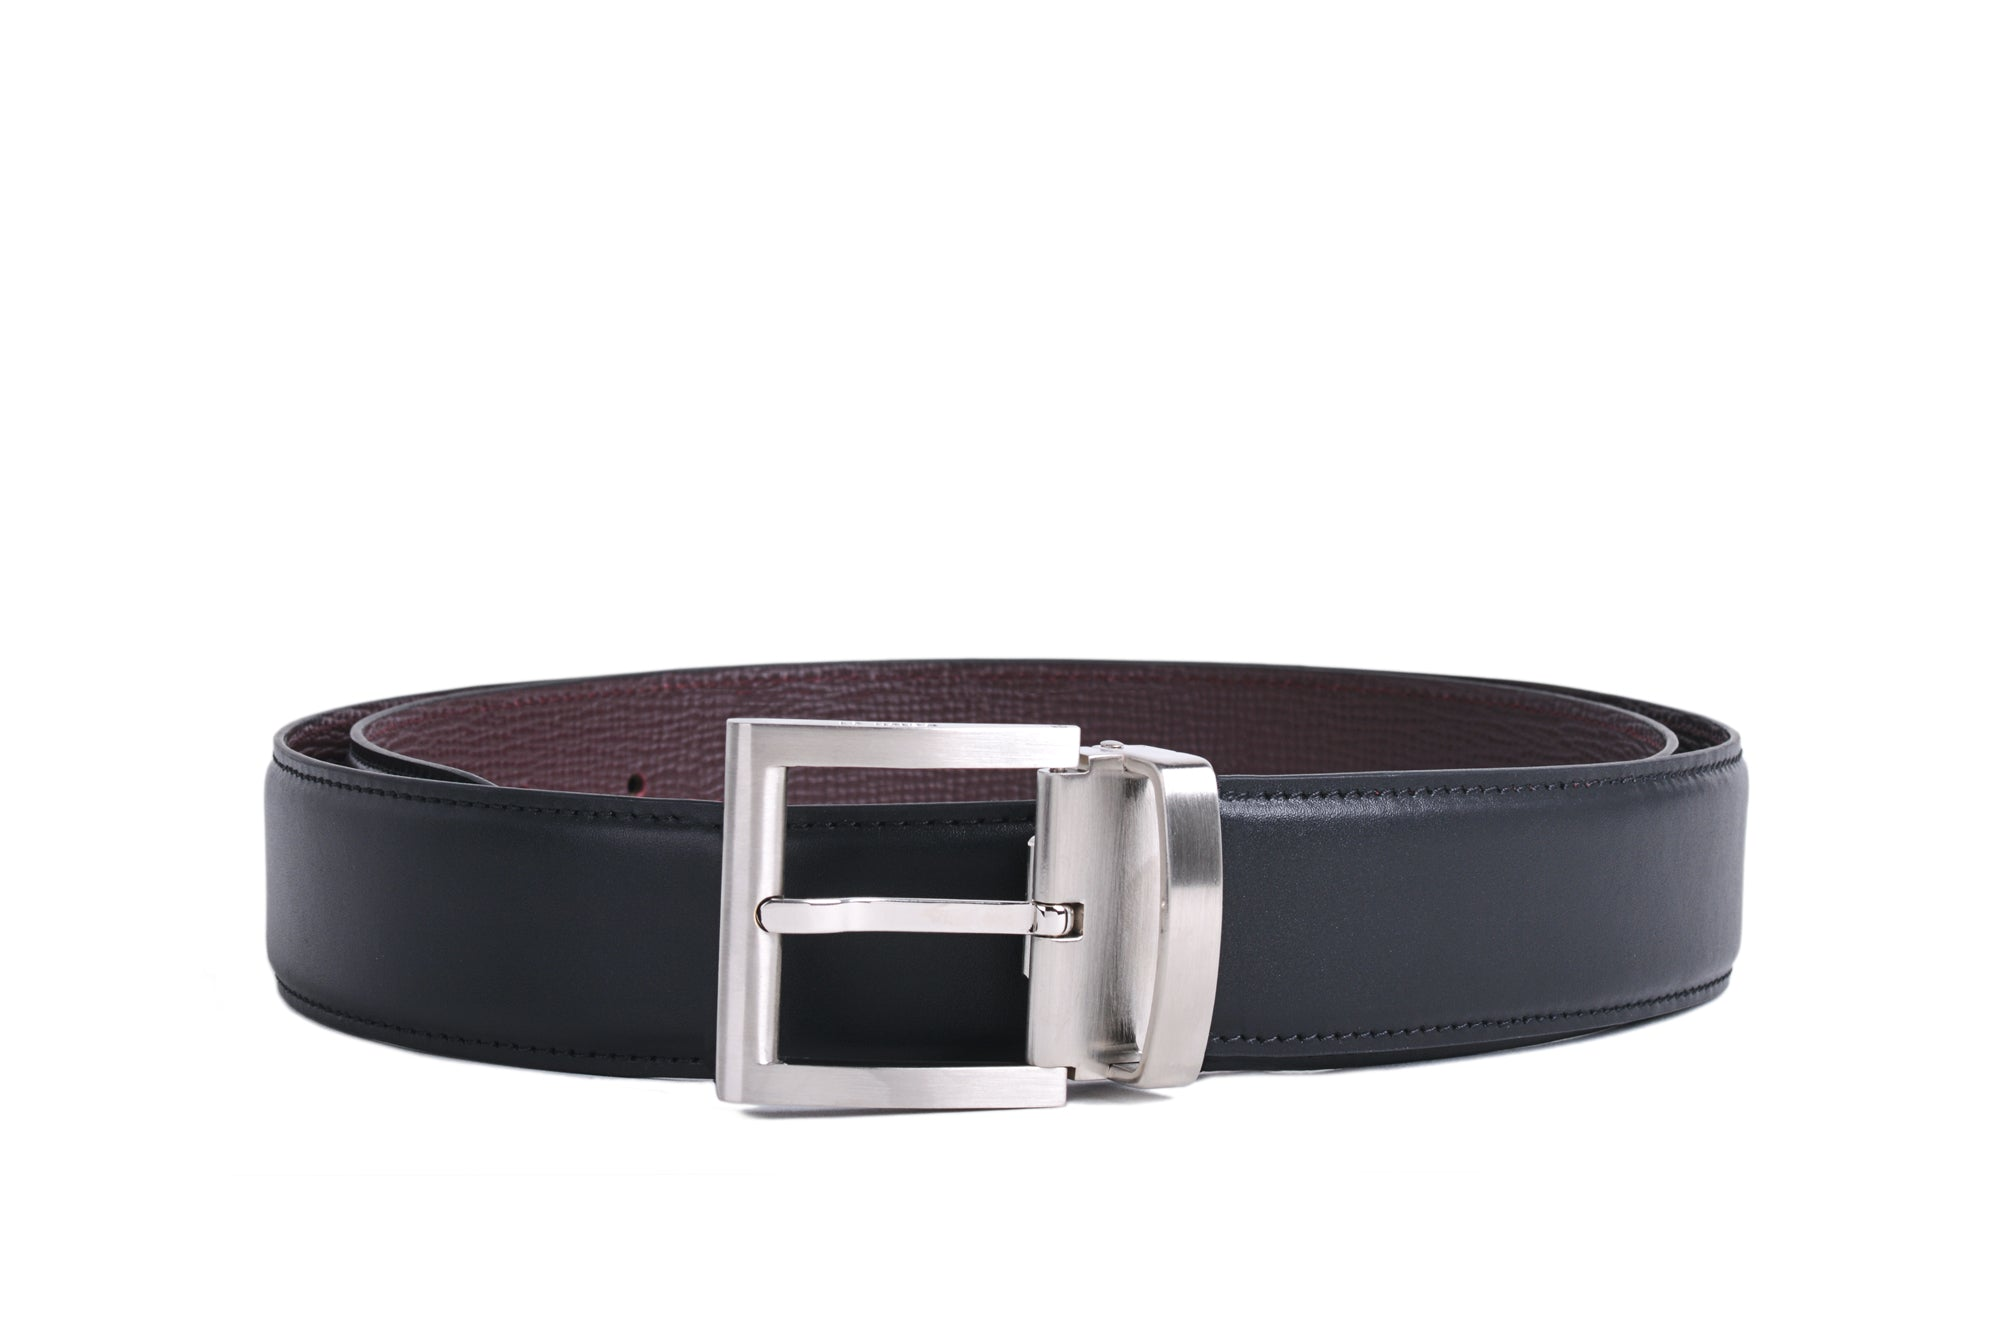 dress - Dress Mens belts pictures video